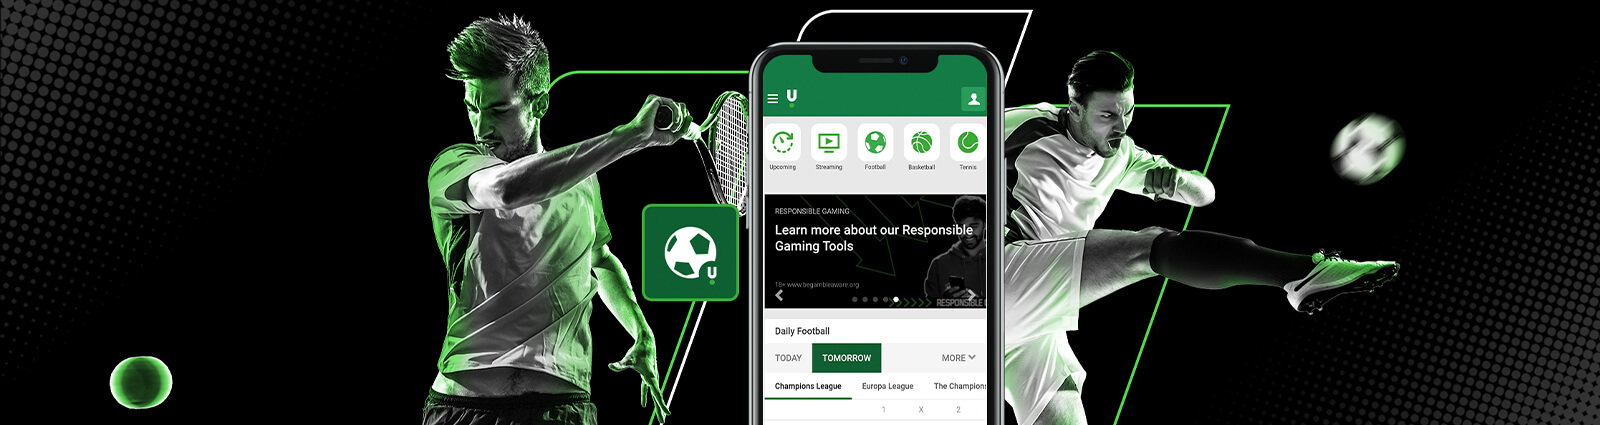 17660-promo-page-banner-update-sb-ca-app-images-onsite-generic-sports-un-ro-2021.jpg